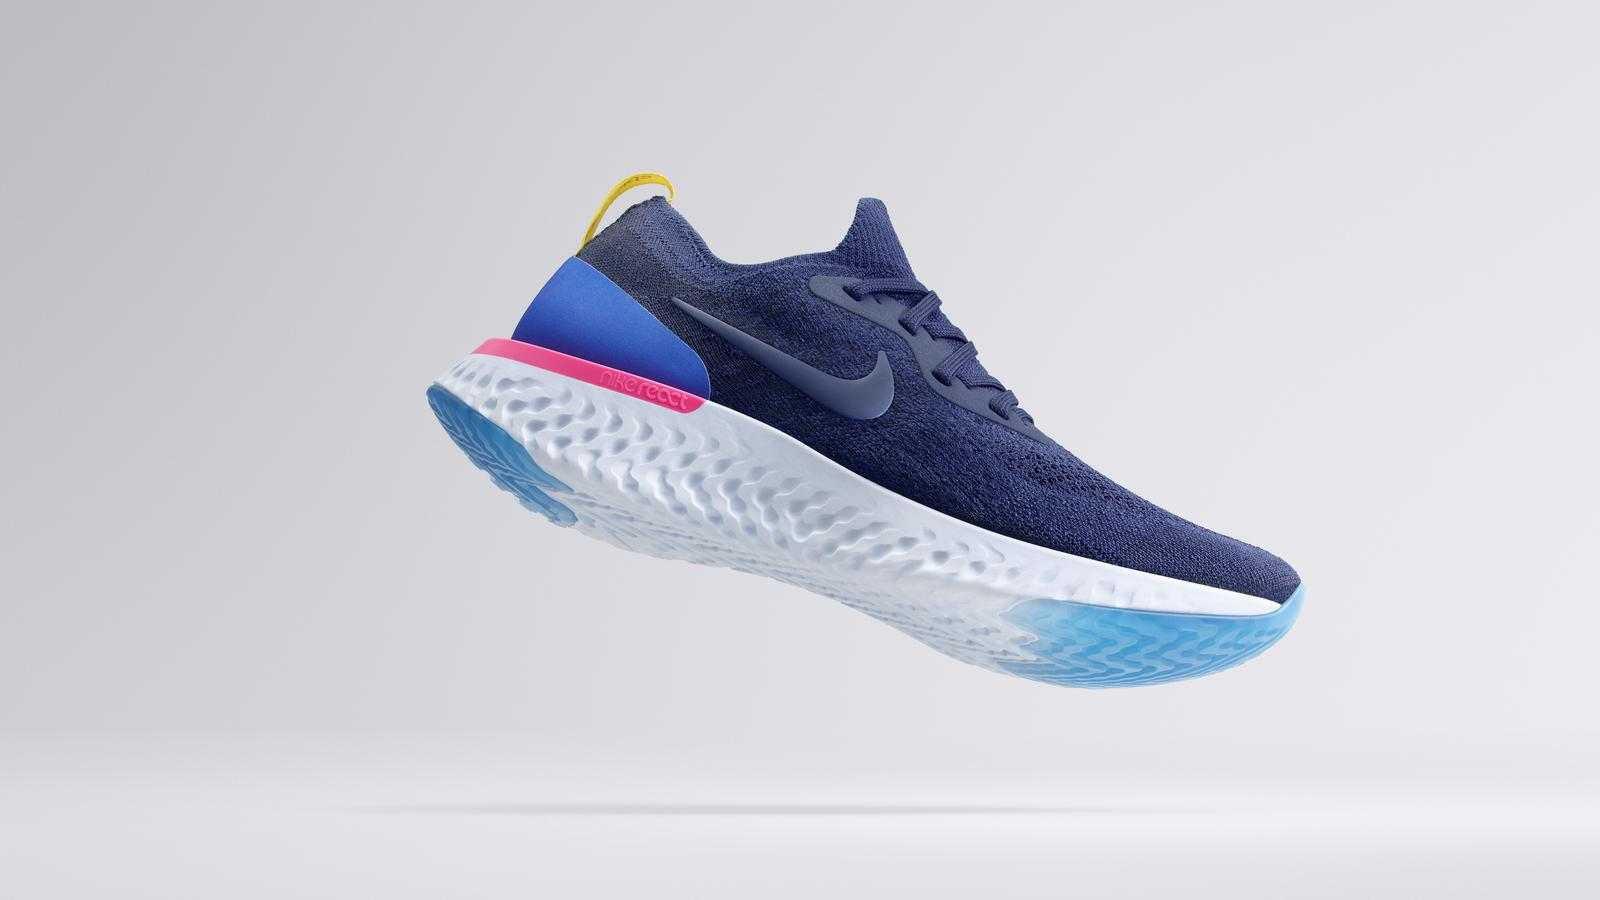 nike epic react flyknit running shoe nike news